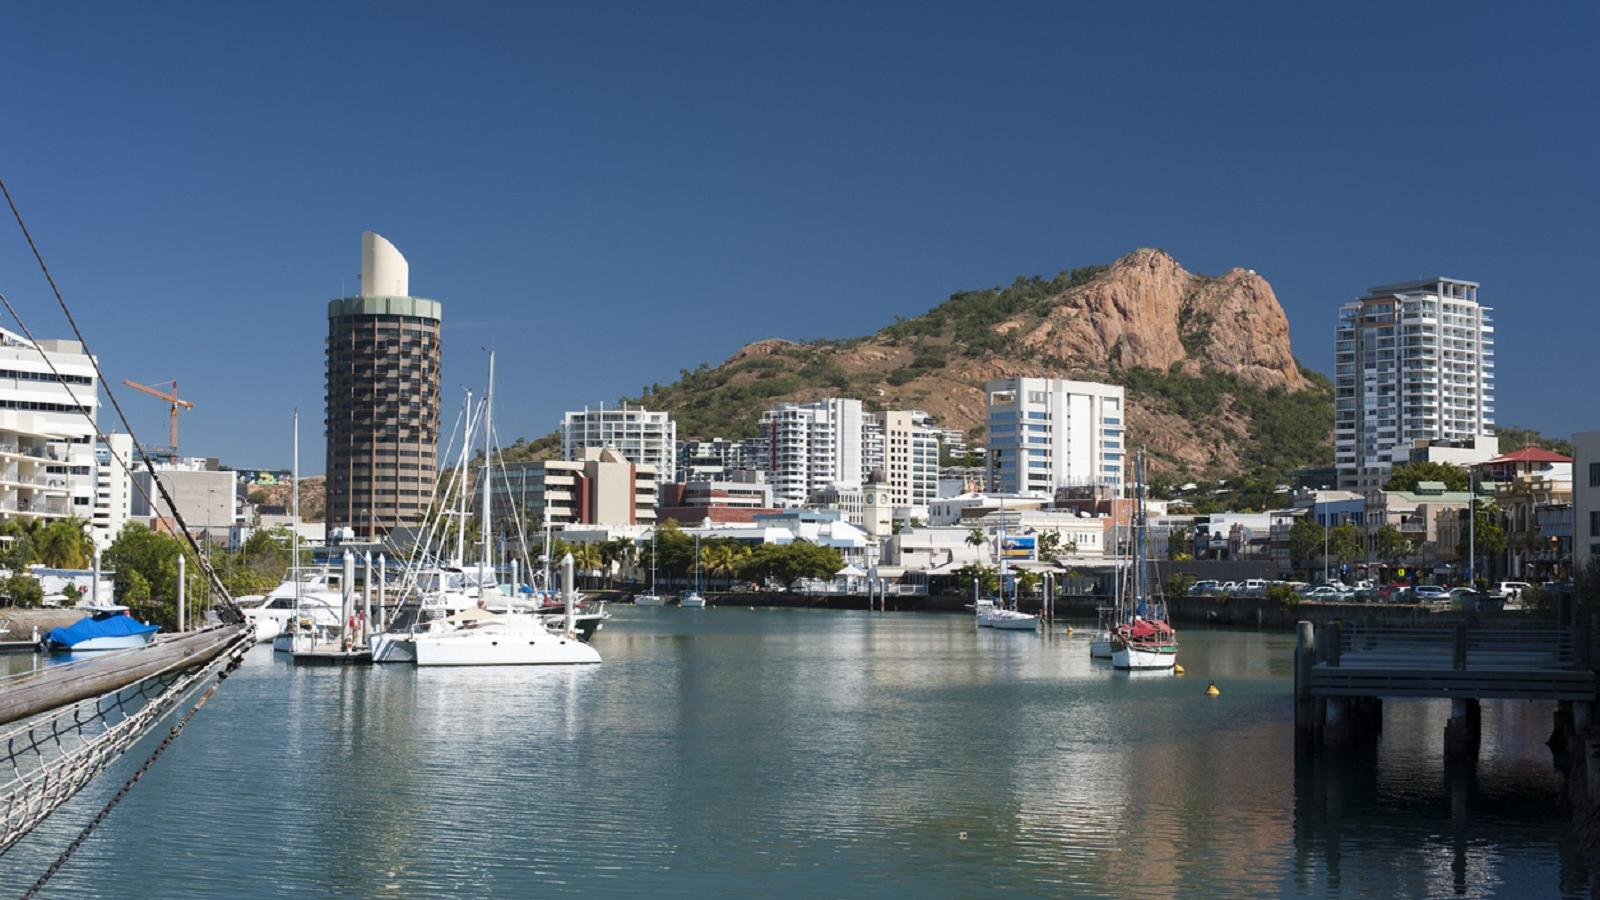 Location Townsville